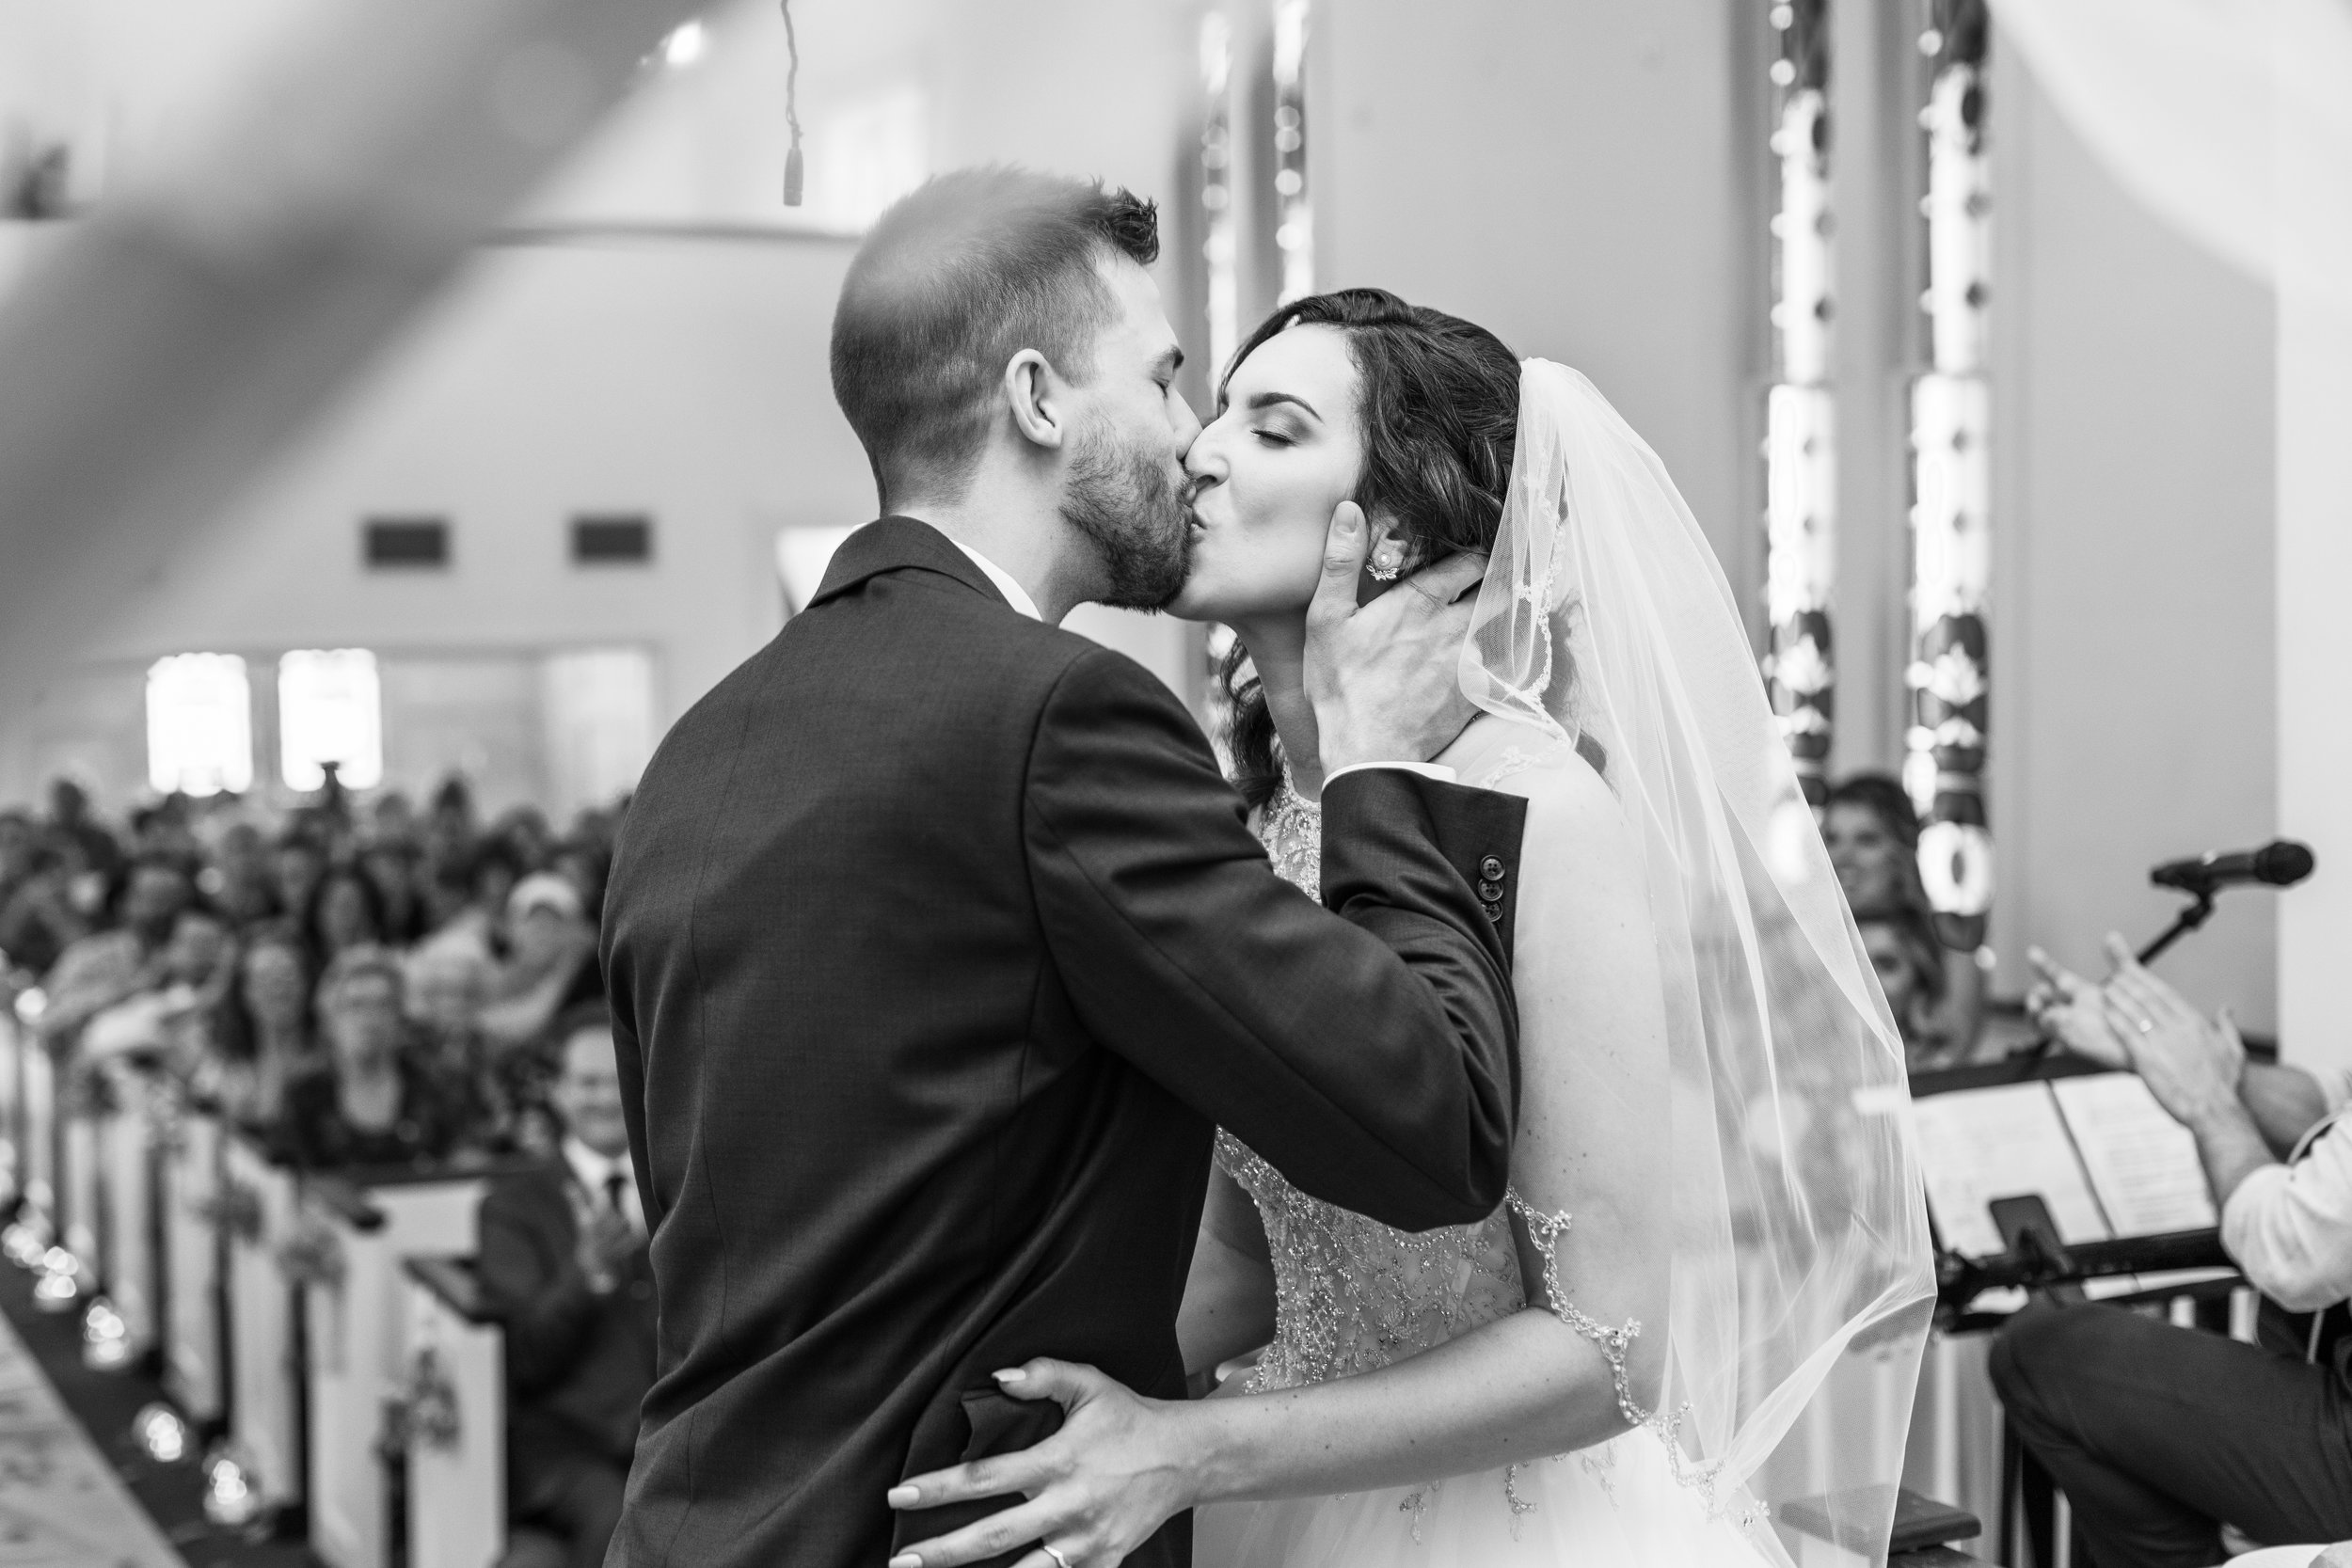 Black and white romantic kissing shot of bride and groom